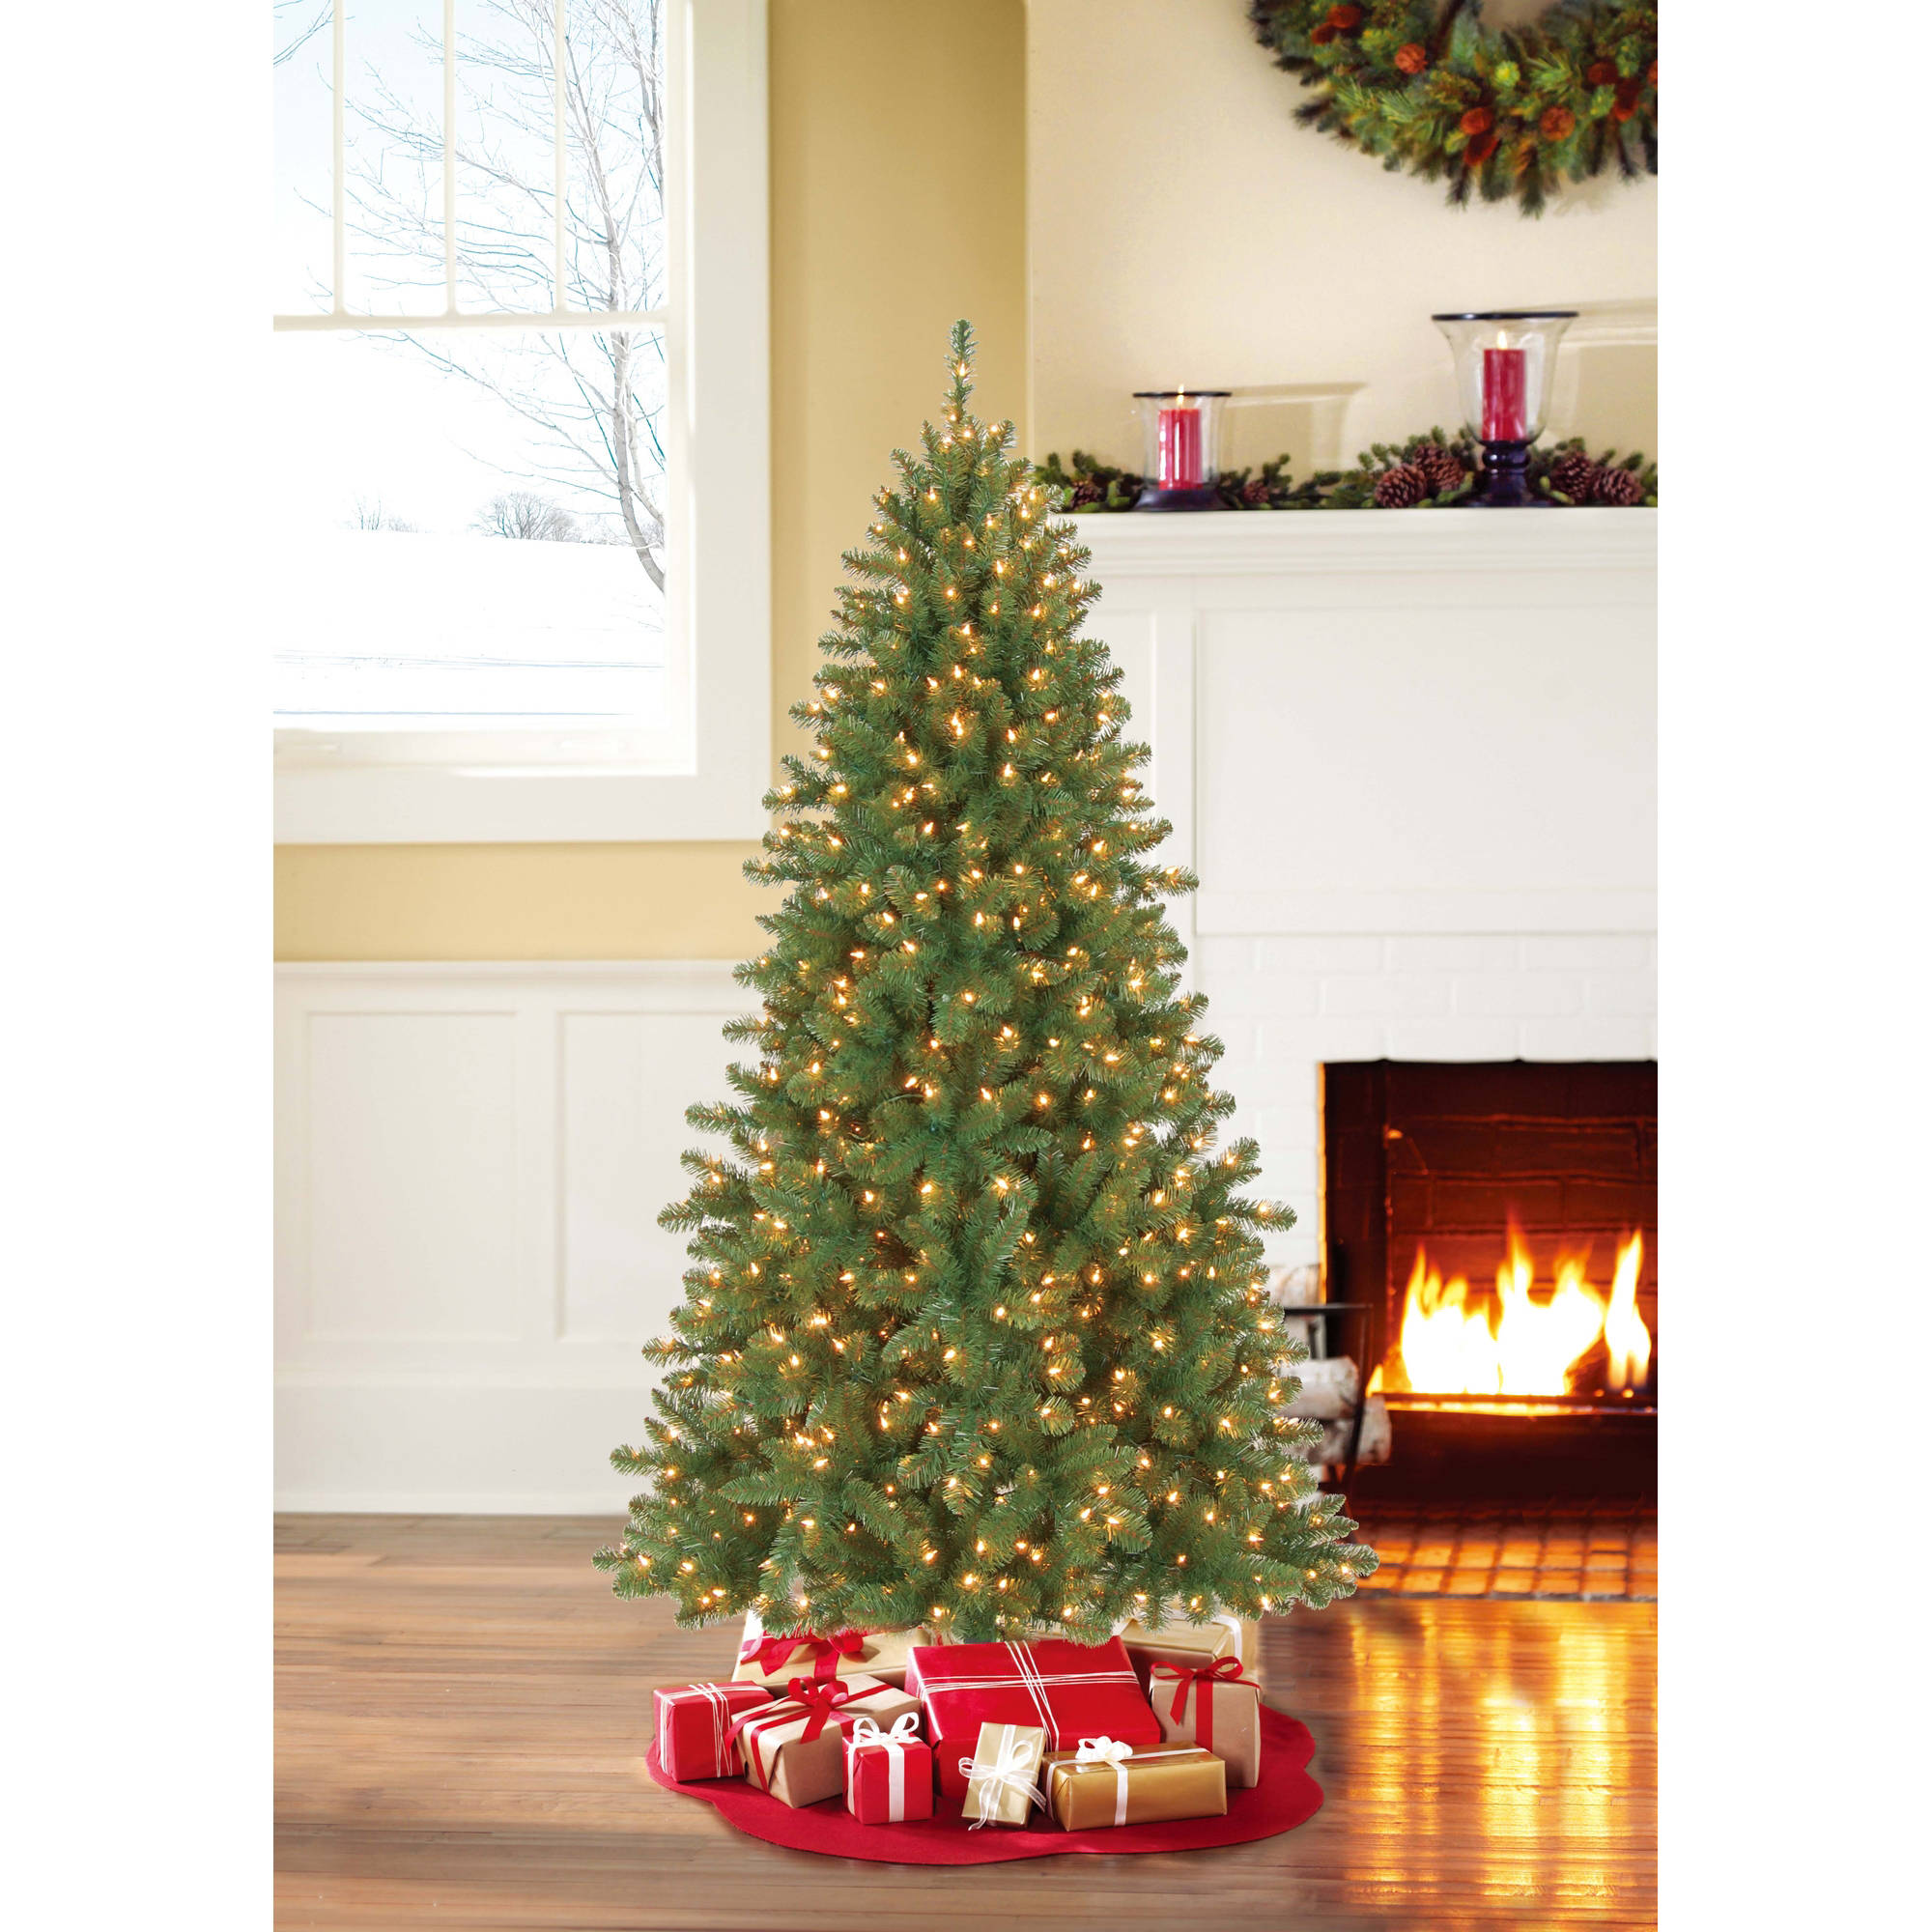 best choice products 7ft pre lit fiber optic artificial christmas pine tree w 280 lights 8 sequences stand green walmartcom